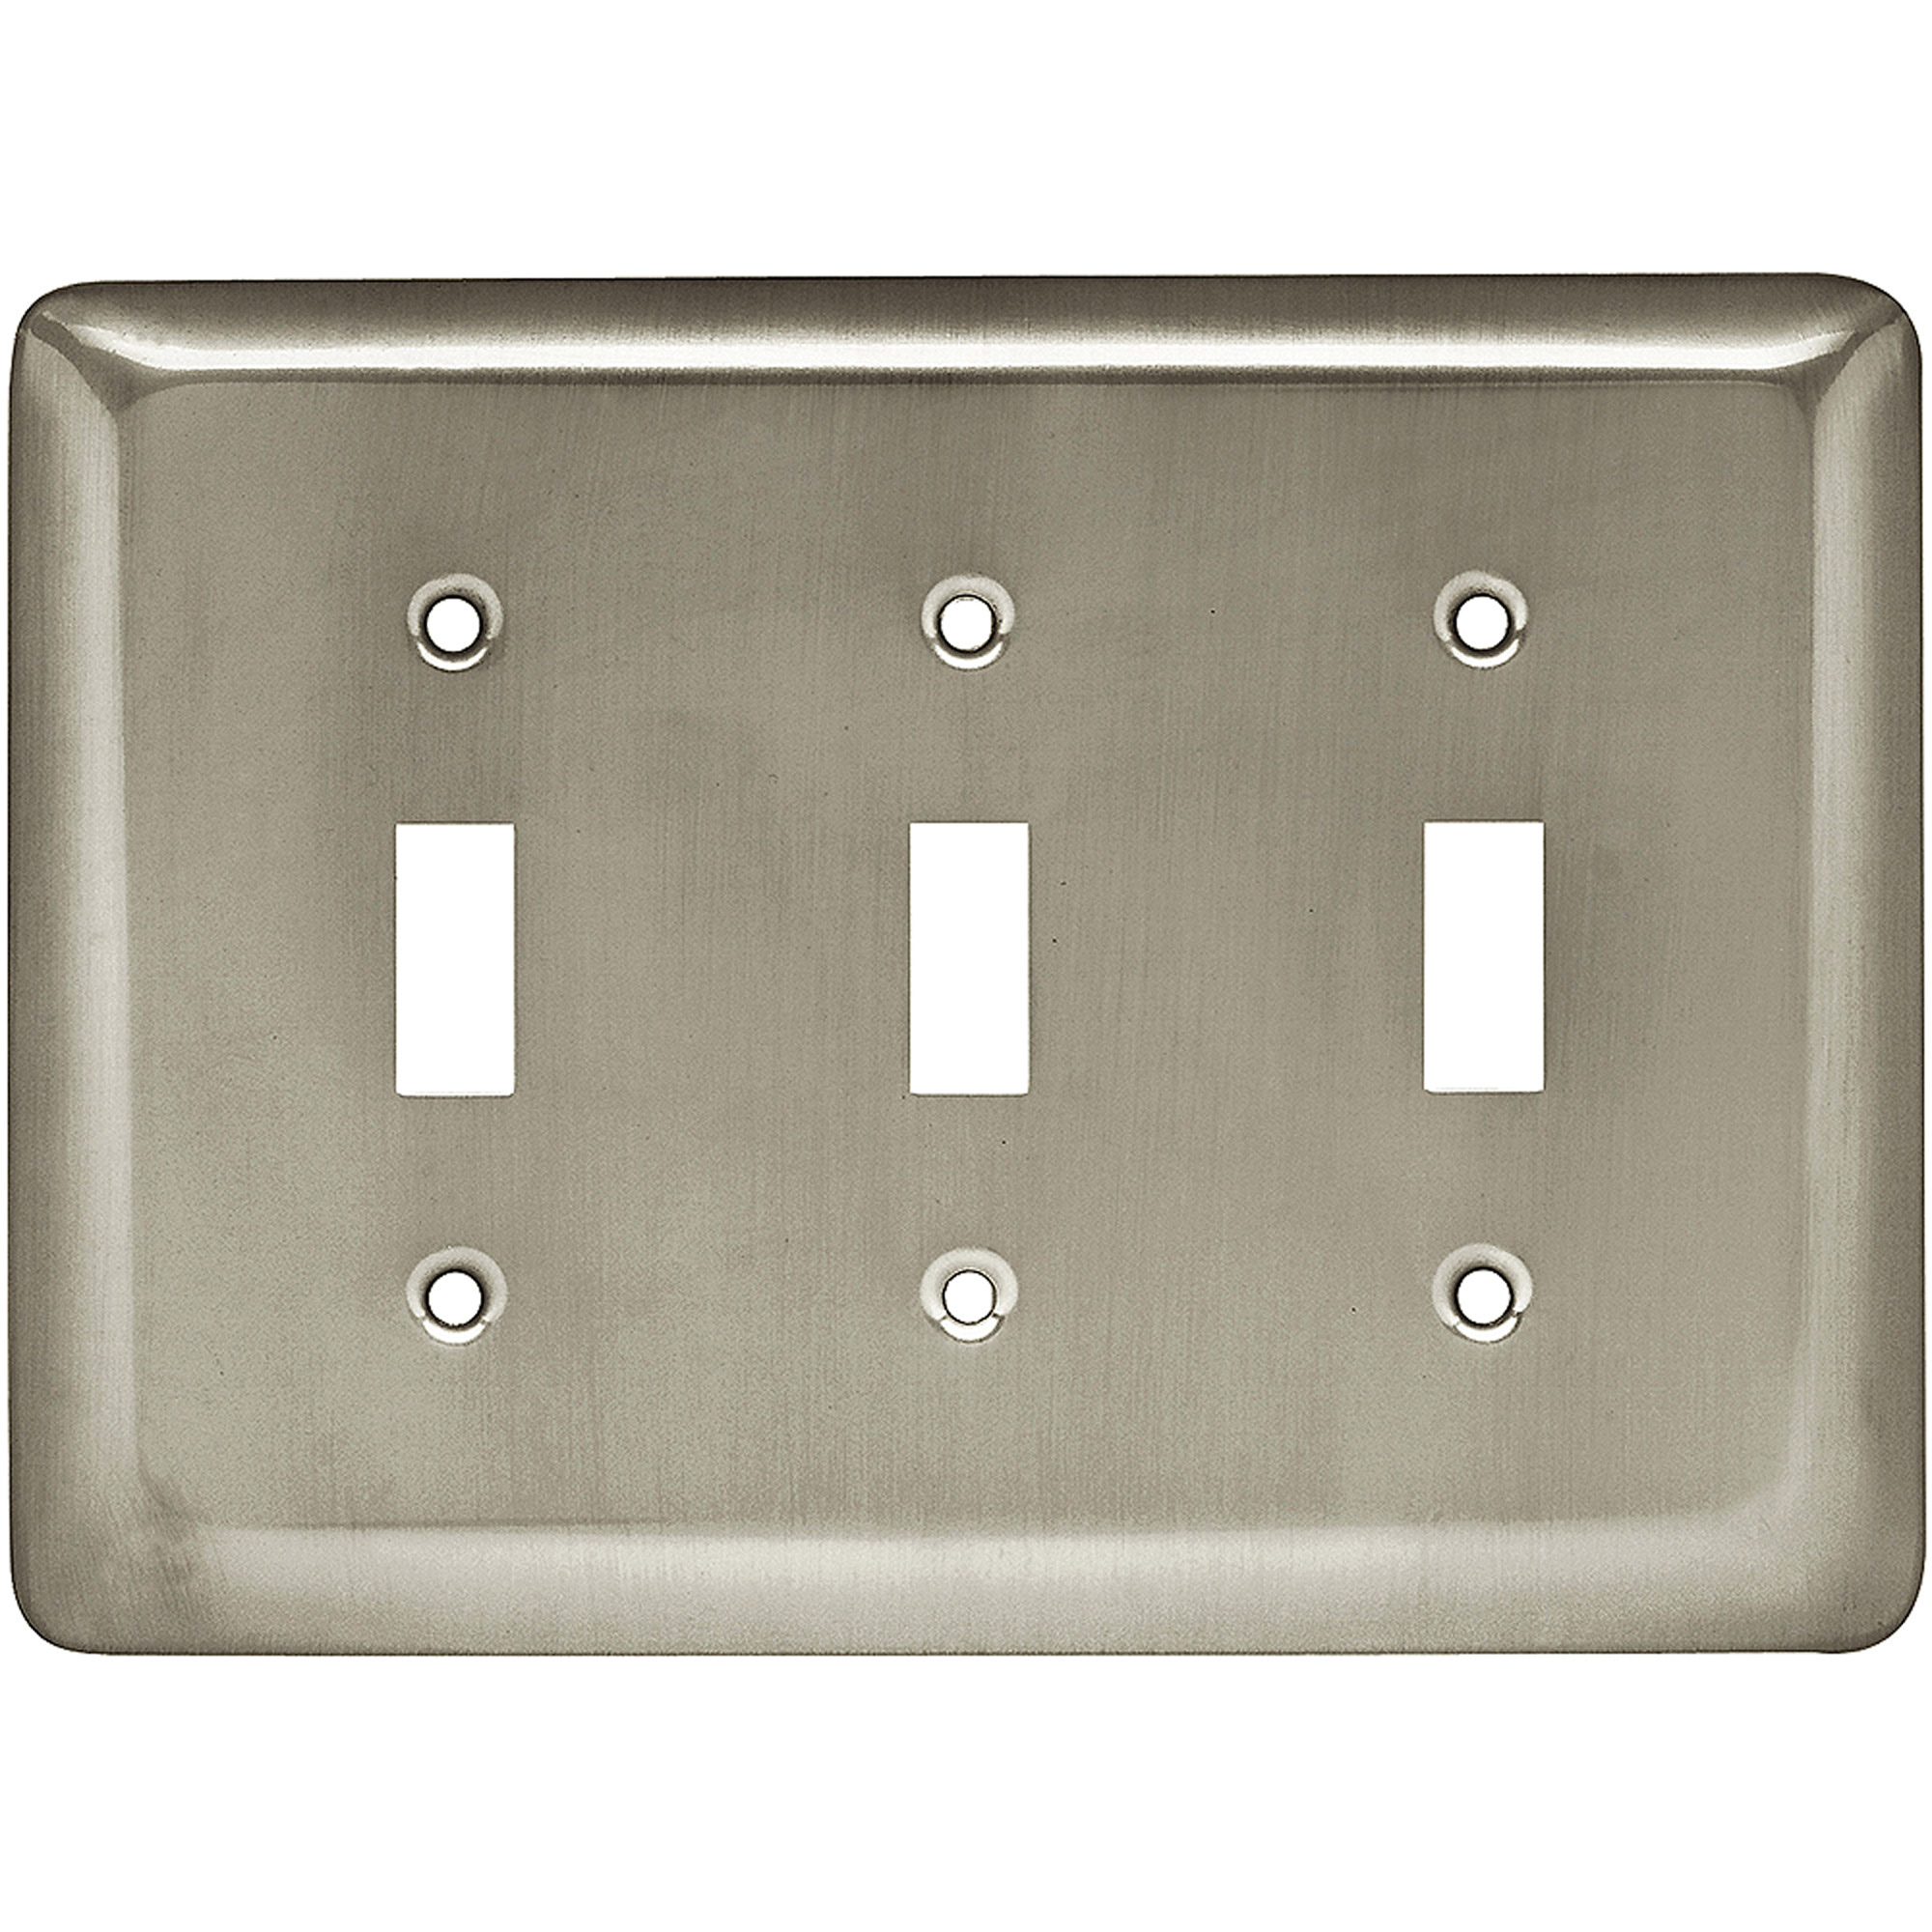 Brainerd Rounded Corner Triple Switch Wall Plate, Available in Multiple Colors